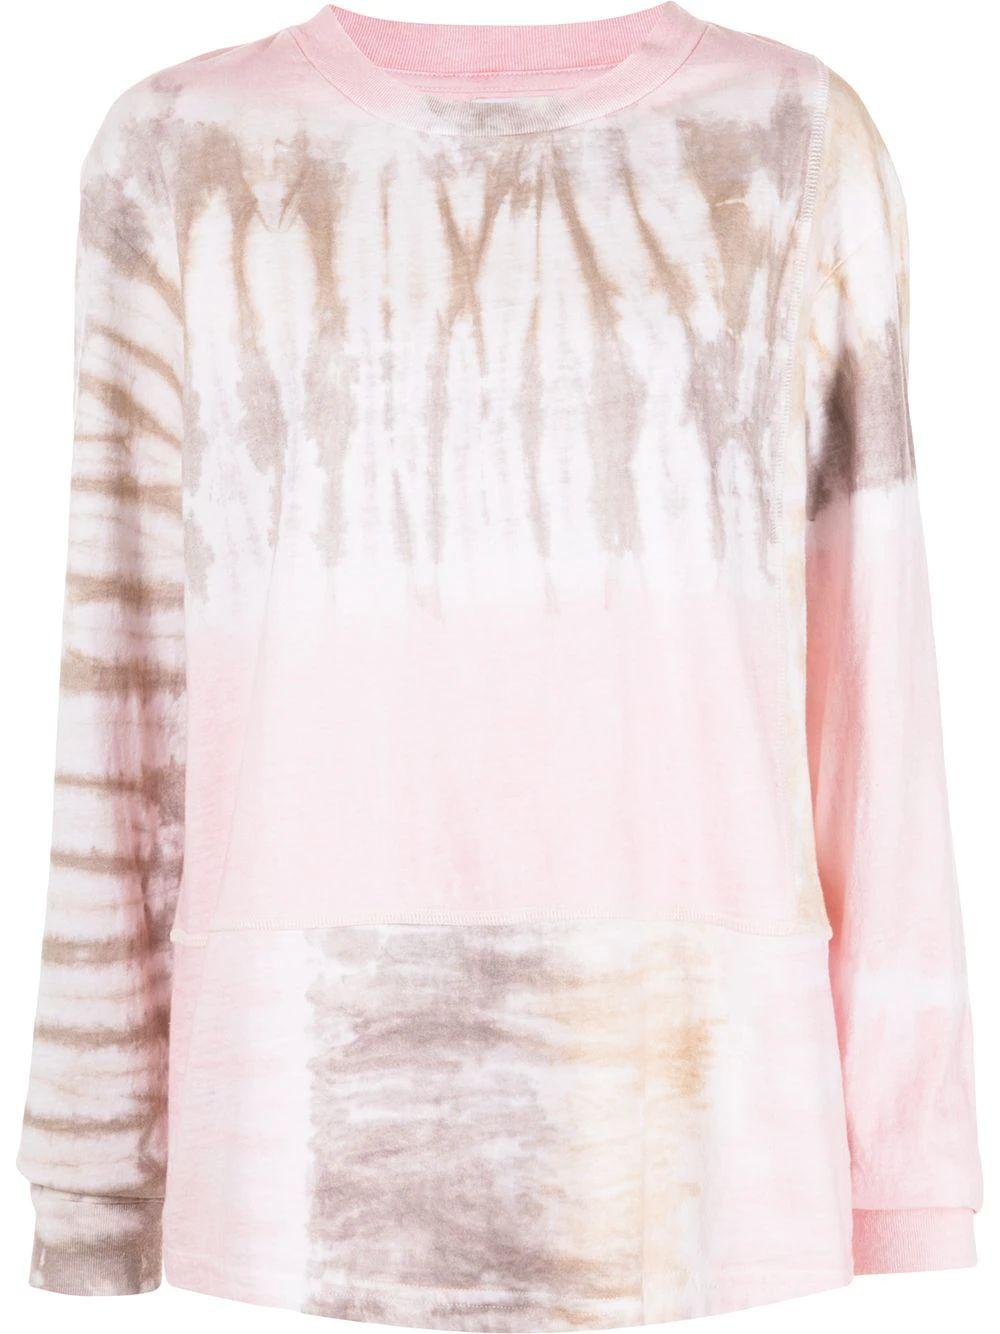 Reconstructed Tie Dye Tee Item # WA239M14745A